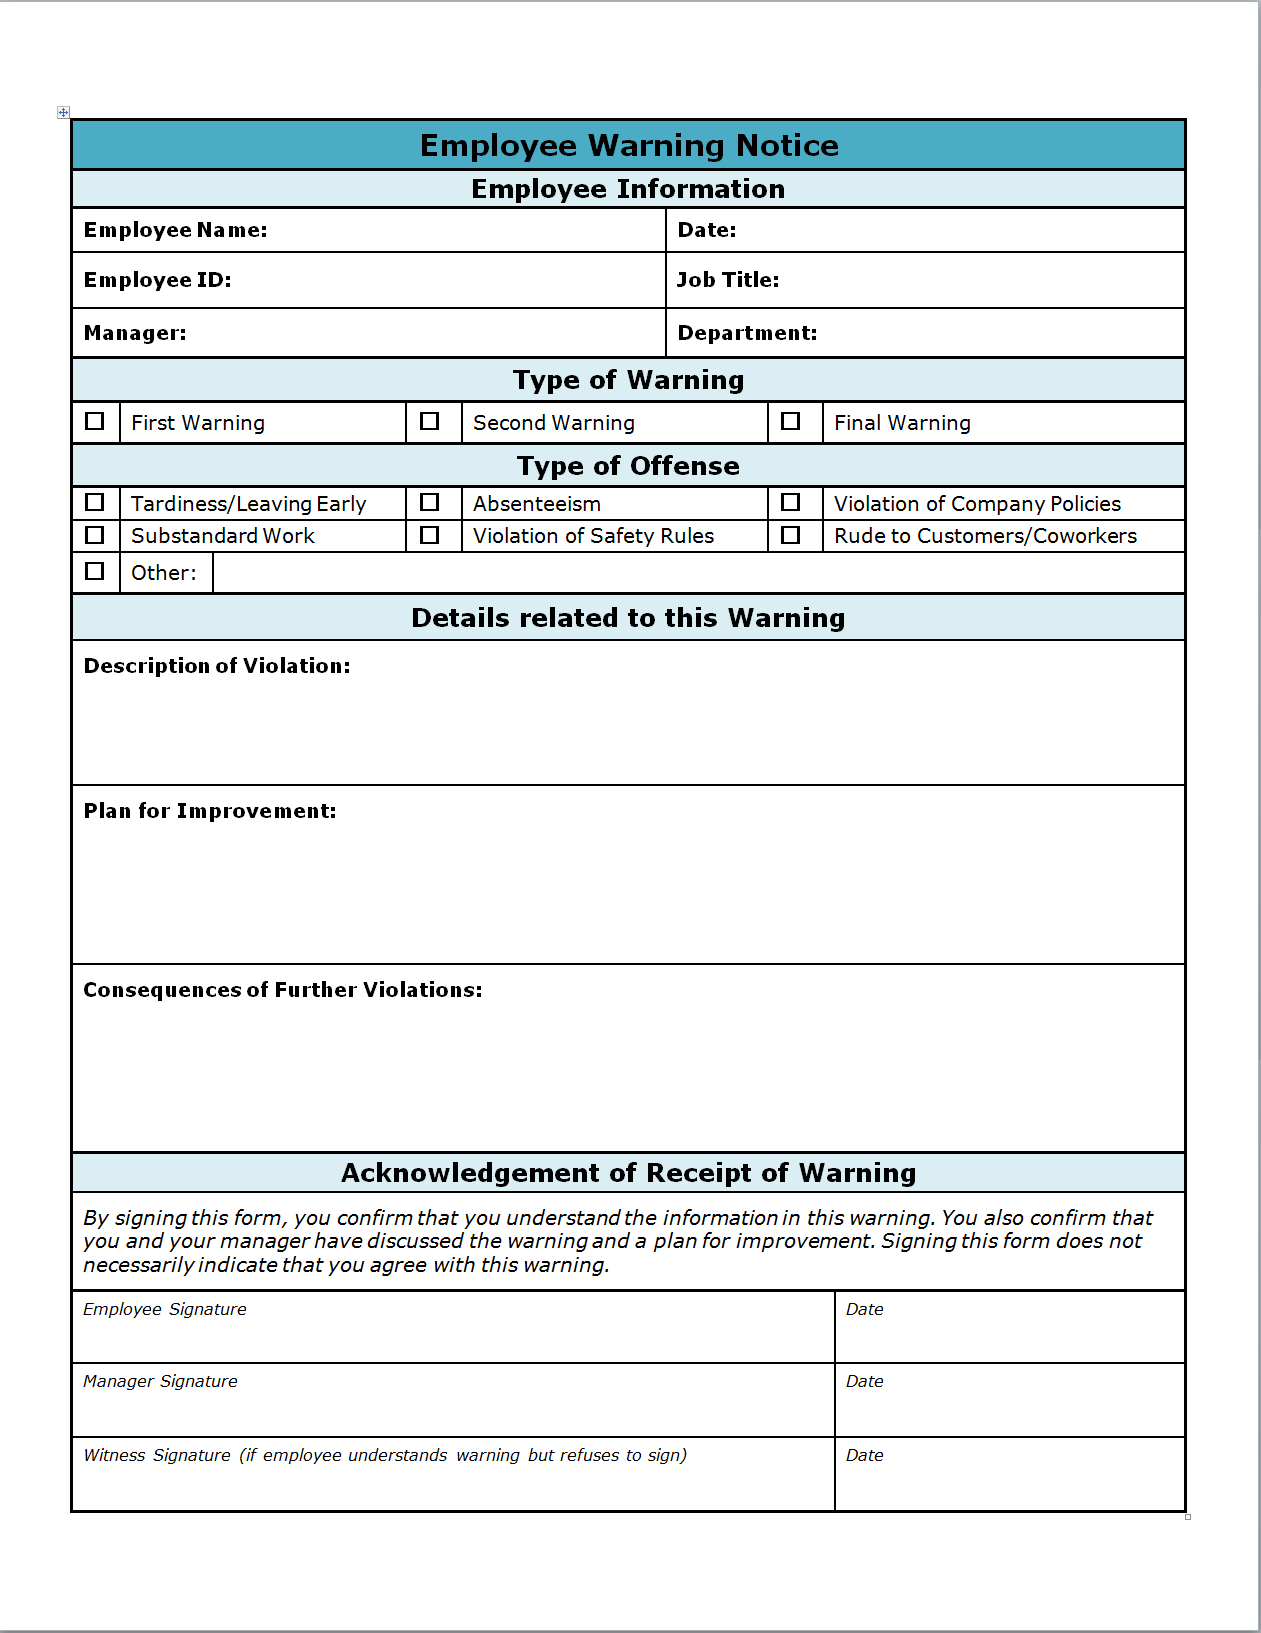 Employee Warning Write Up - Invitation Templates | Employee ...